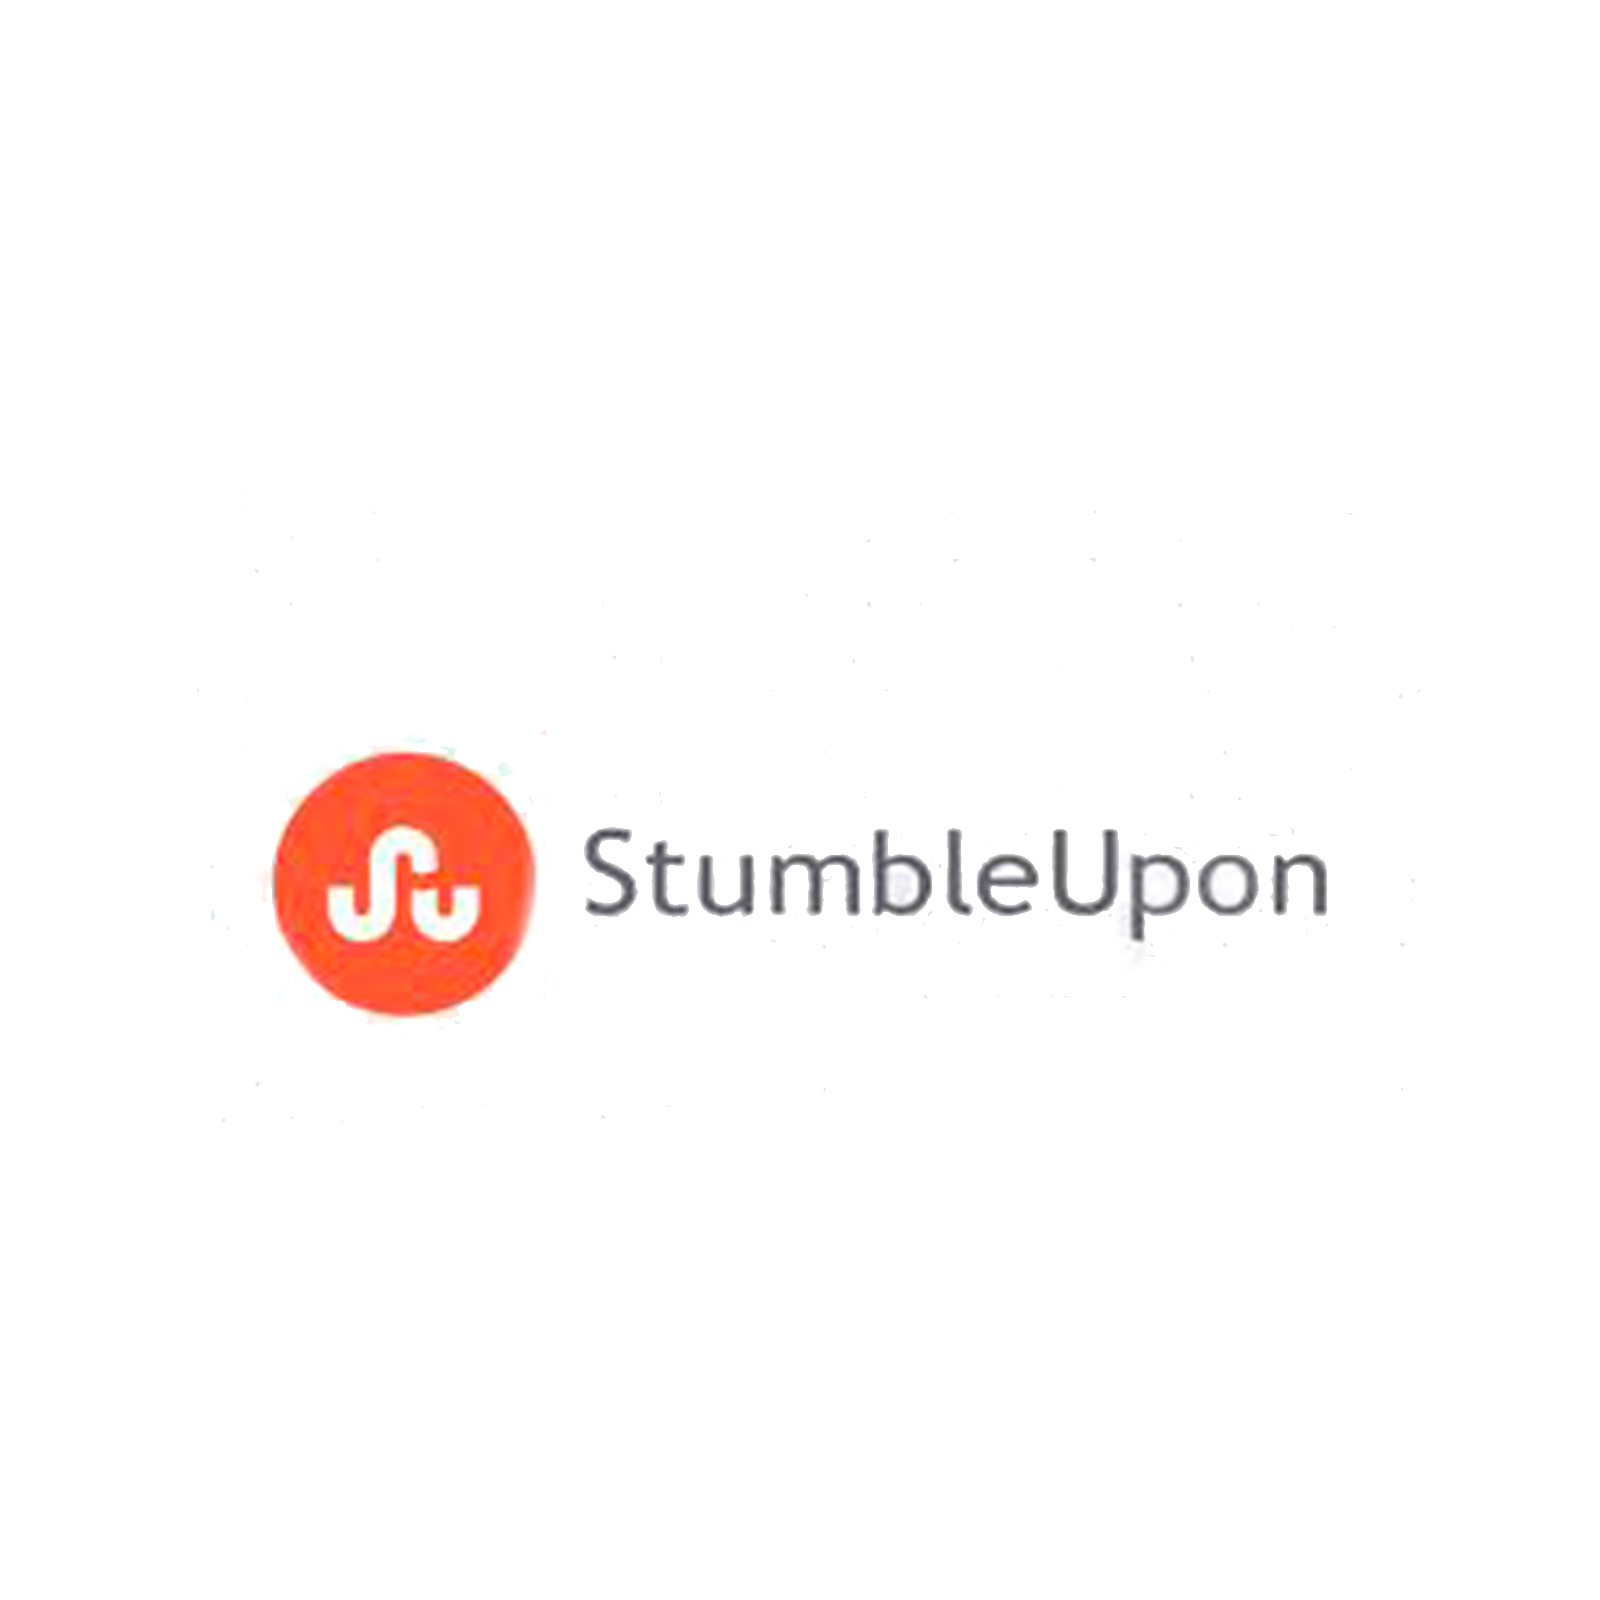 StumbleUpon is an intelligent social networking platform that finds or discovers content and recommends the same to its users. You are thus empowered to discover webpages, images, videos and so on and then rate them as per your interest and taste.